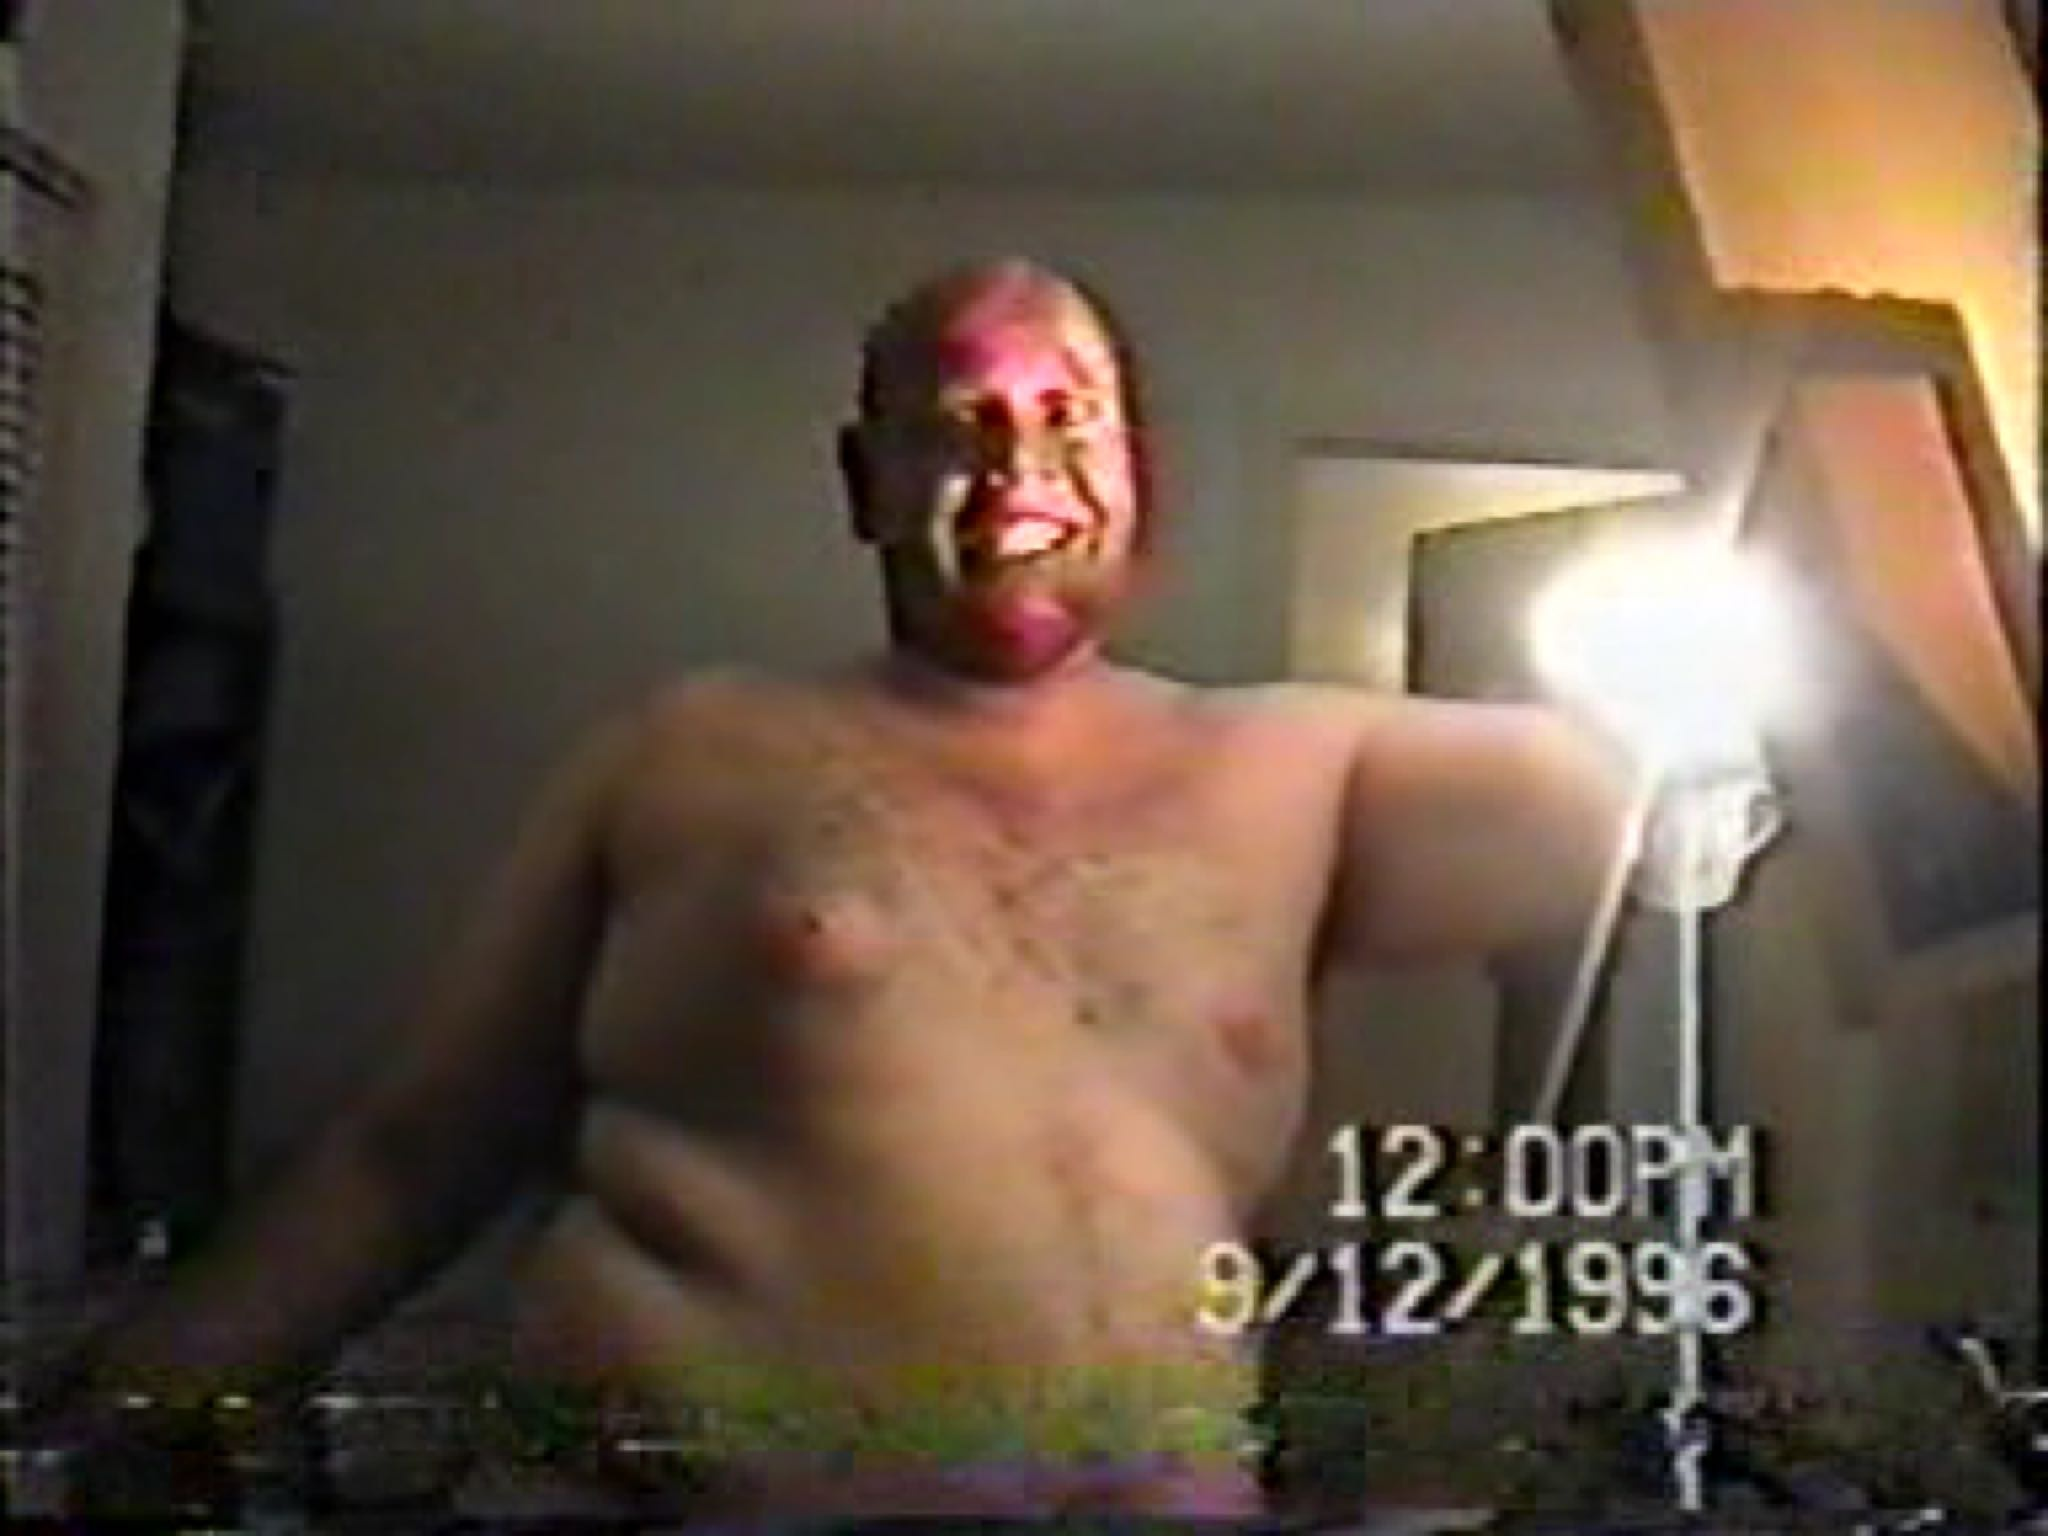 What is the most horrifying and disturbing video on the